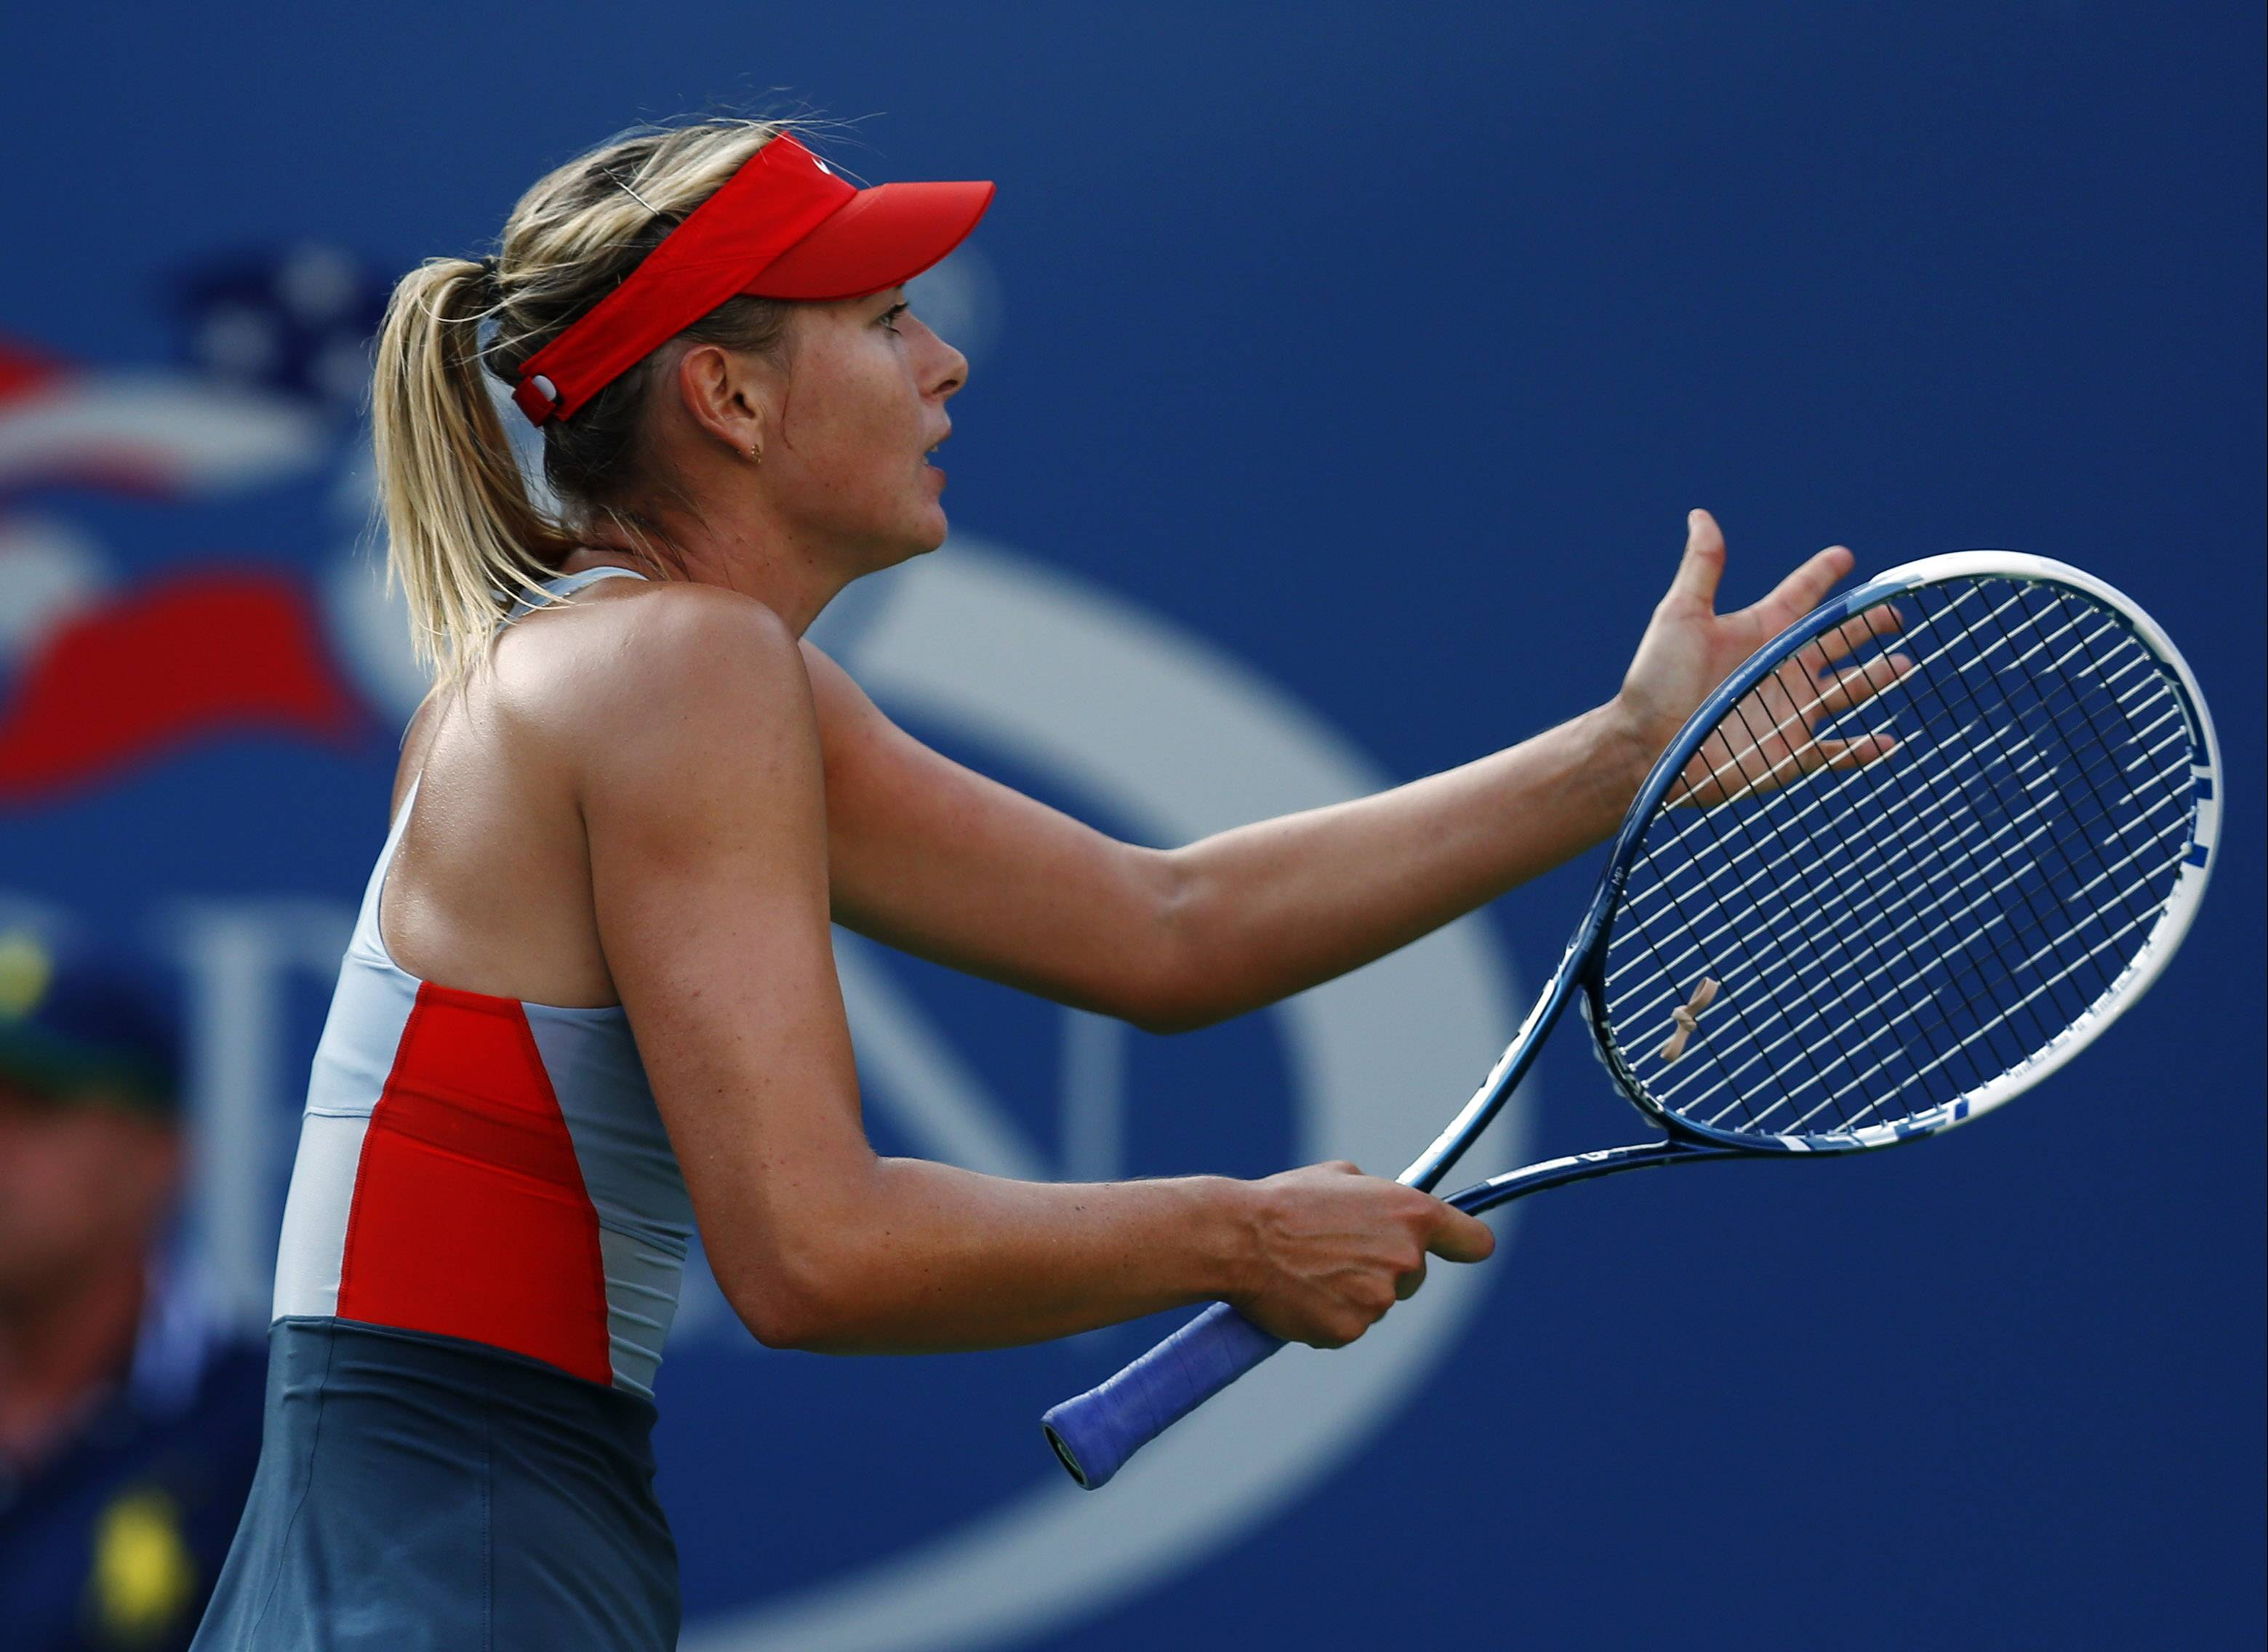 Maria Sharapova, of Russia, motions to the umpire during the second set against Alexandra Dulgheru, of Romania, during the second round of the 2014 U.S. Open tennis tournament, Wednesday, Aug. 27, 2014, in New York. (AP Photo/Matt Rourke)